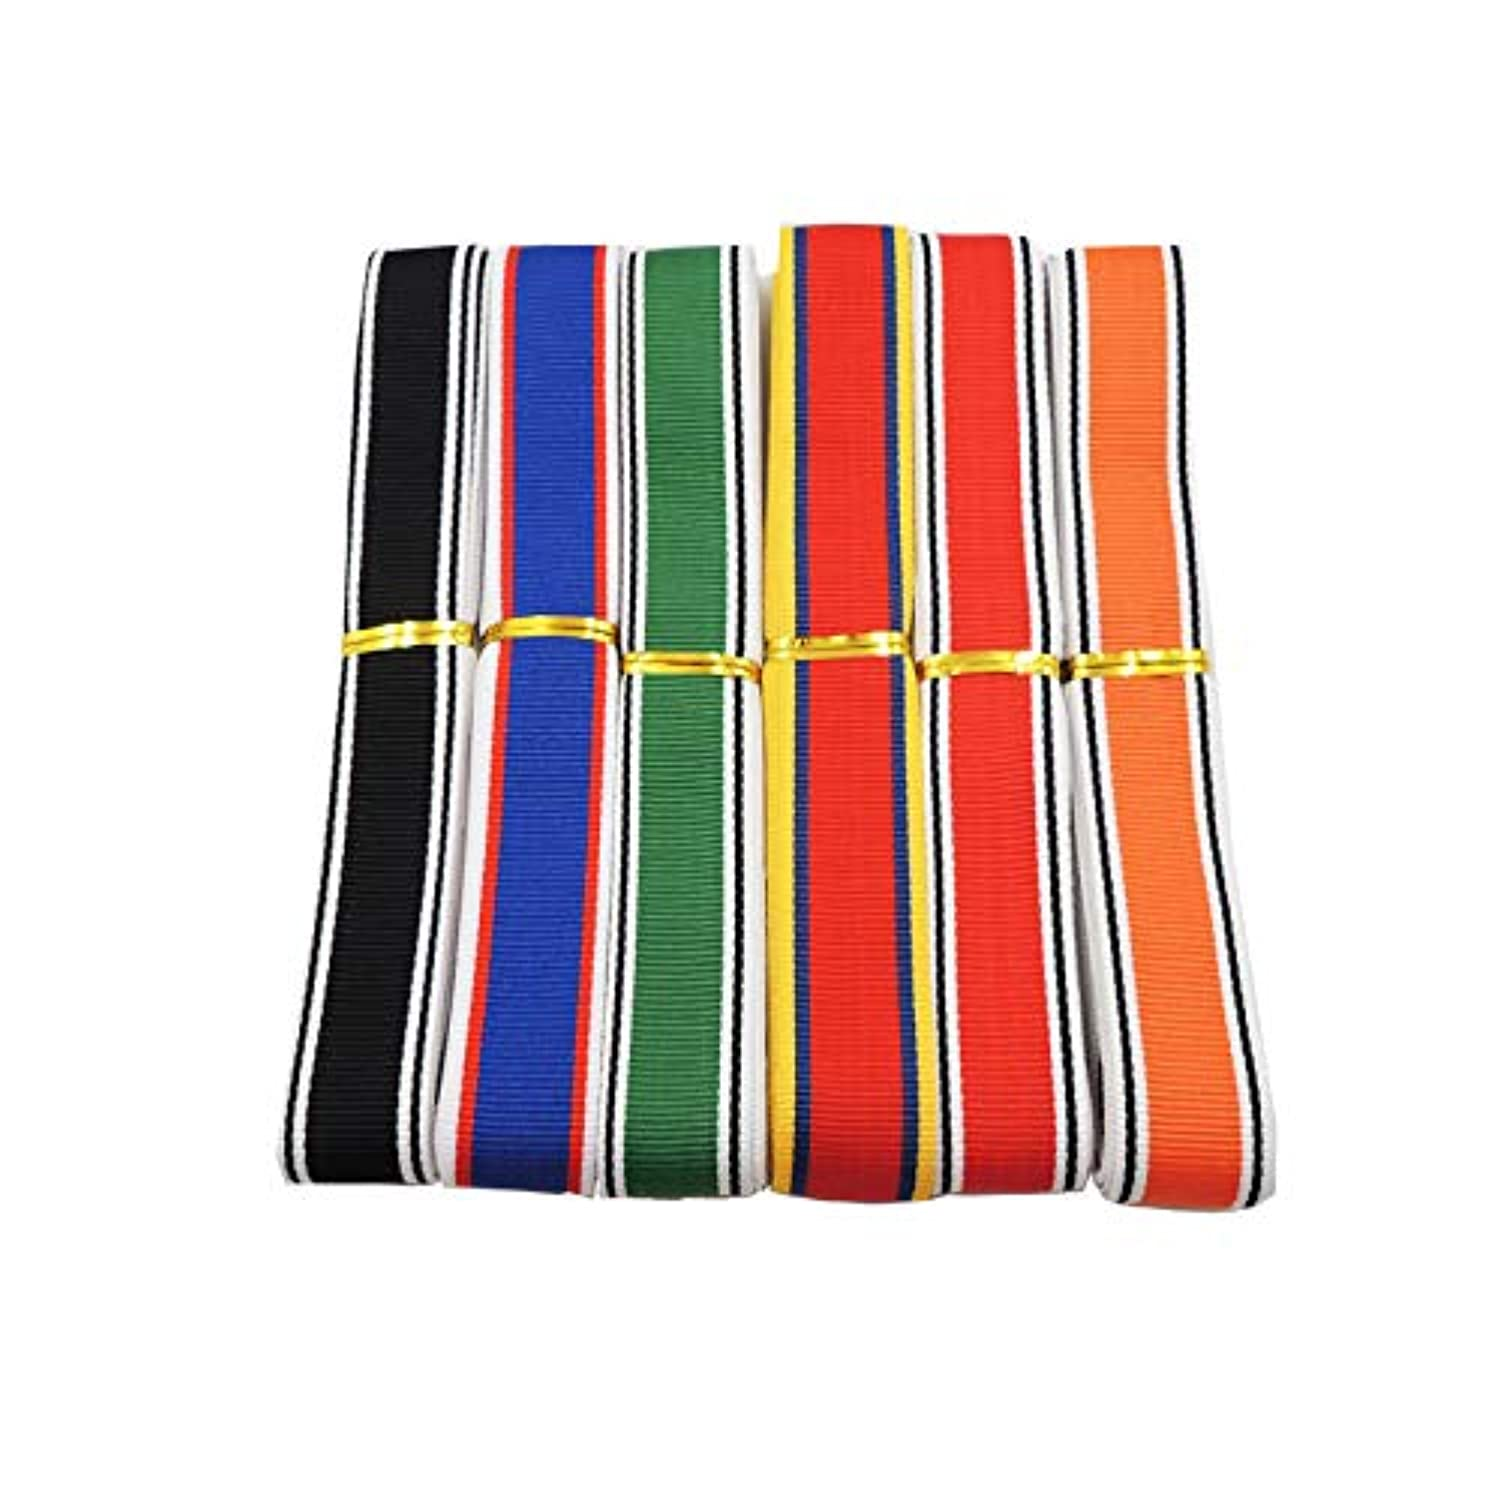 18 Yards Striped Ribbons National Flag Striped Ribbon for Crafts